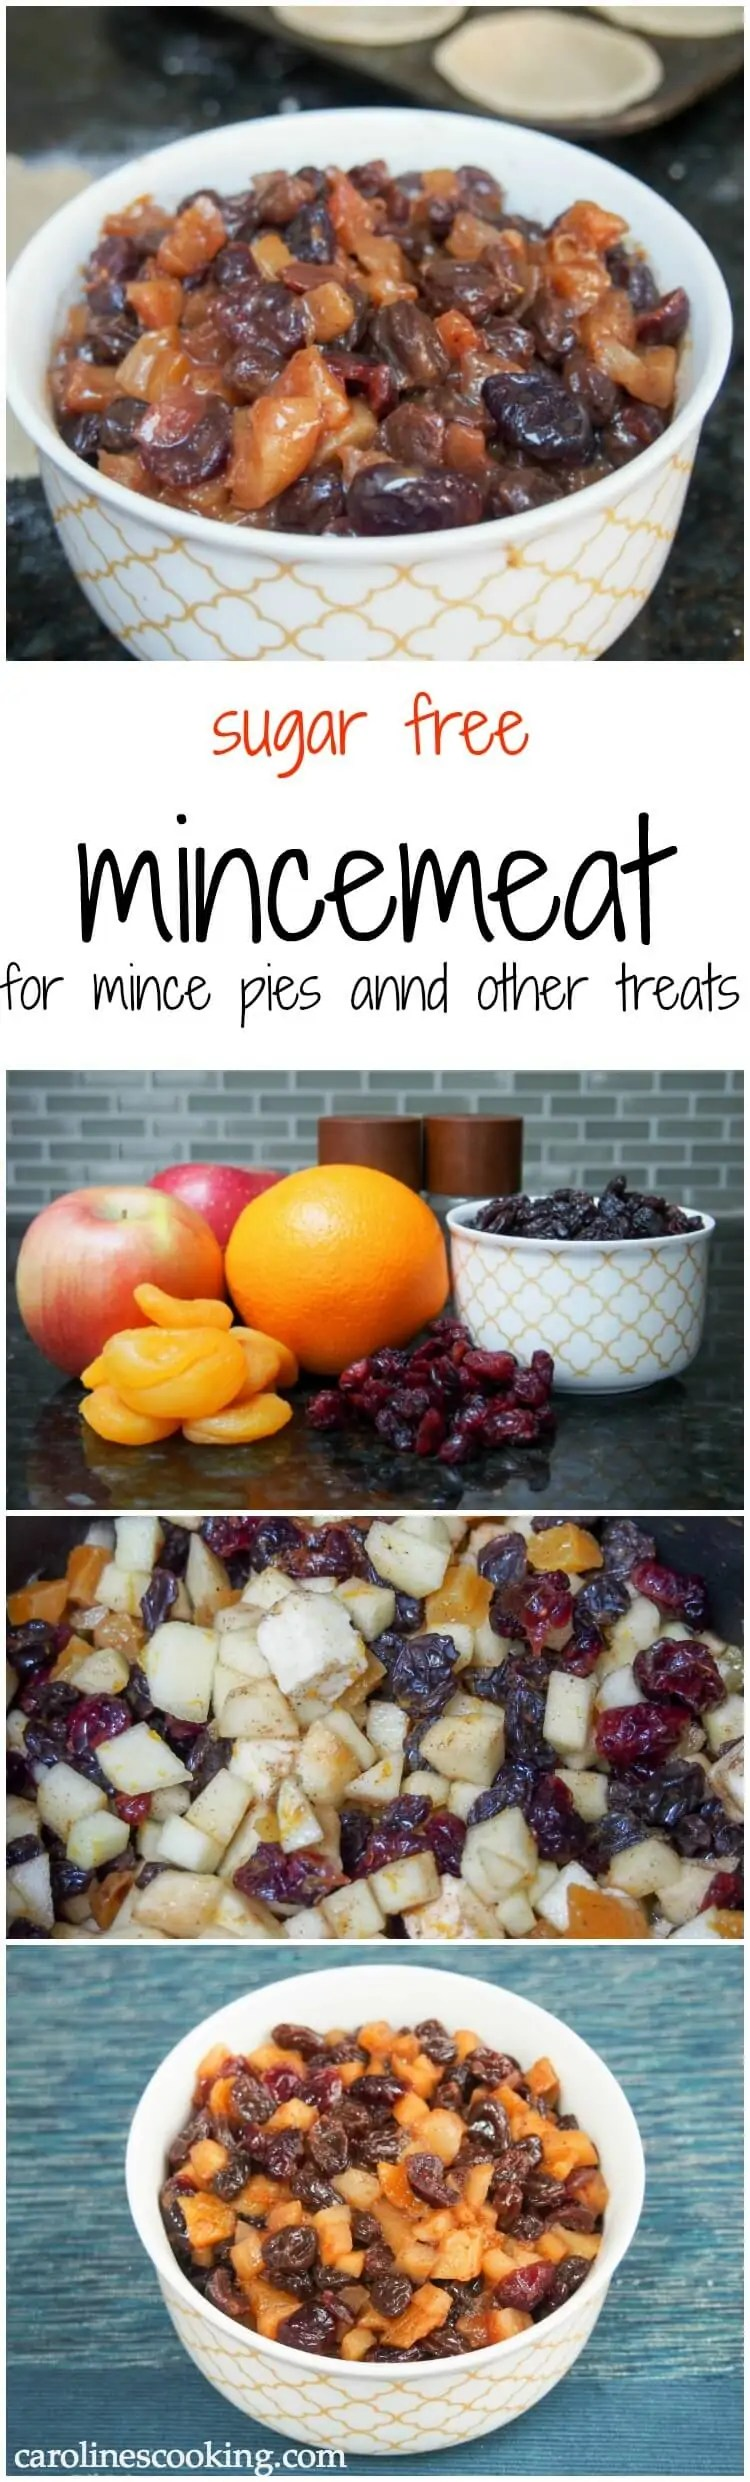 Based on traditional British Christmas recipes, this mincemeat is both healthy and lighter than your typical recipe with no refined sugar but plenty of delicious fruit and spice flavor. Great as a pie filing or in baked goods, easy too.